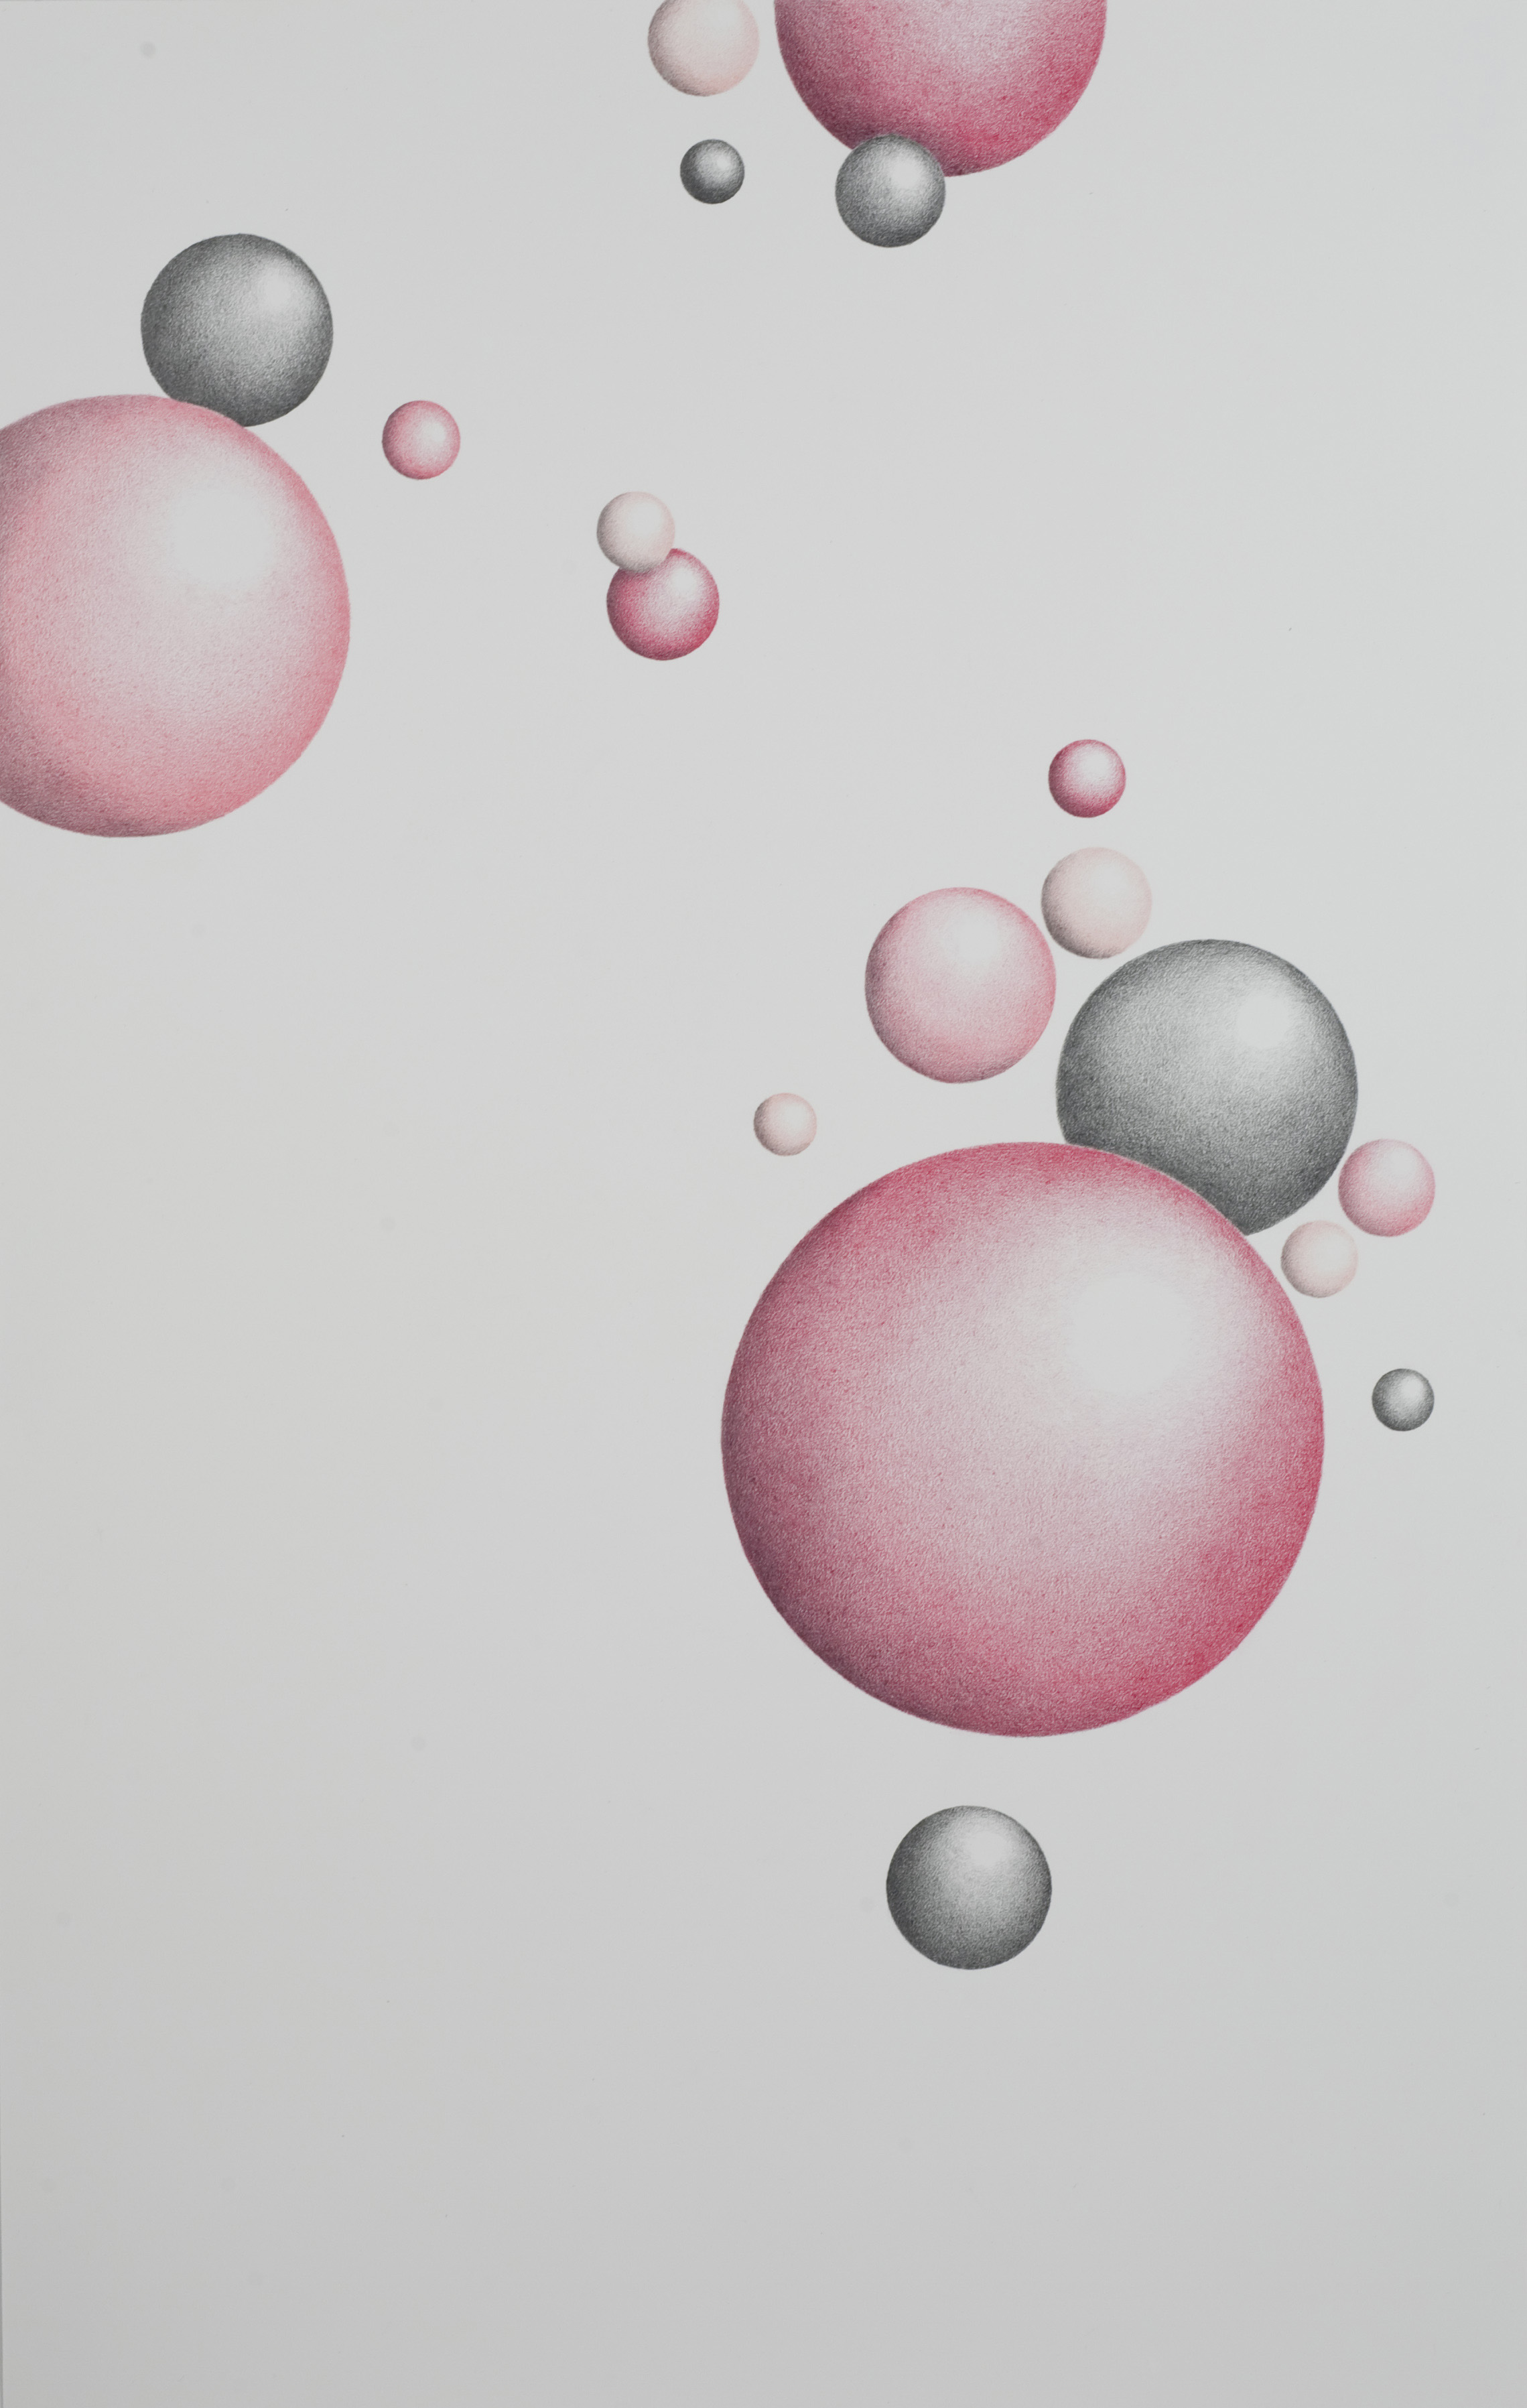 Bubble Drawing #4